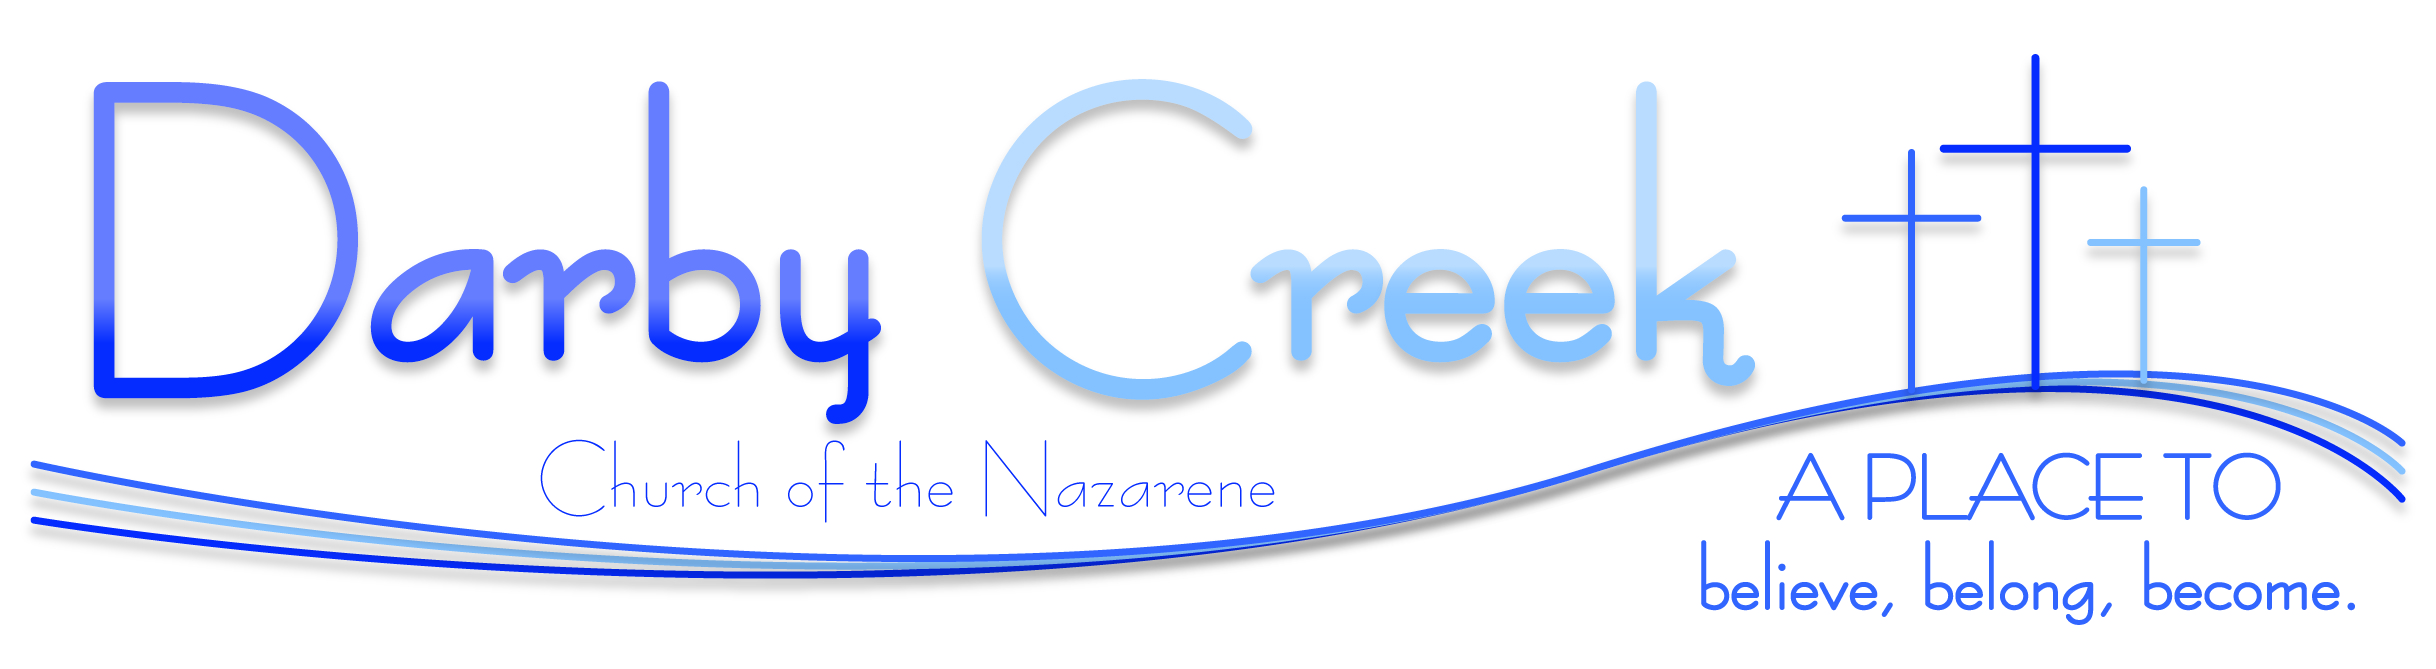 Darby Creek Church of Nazarene